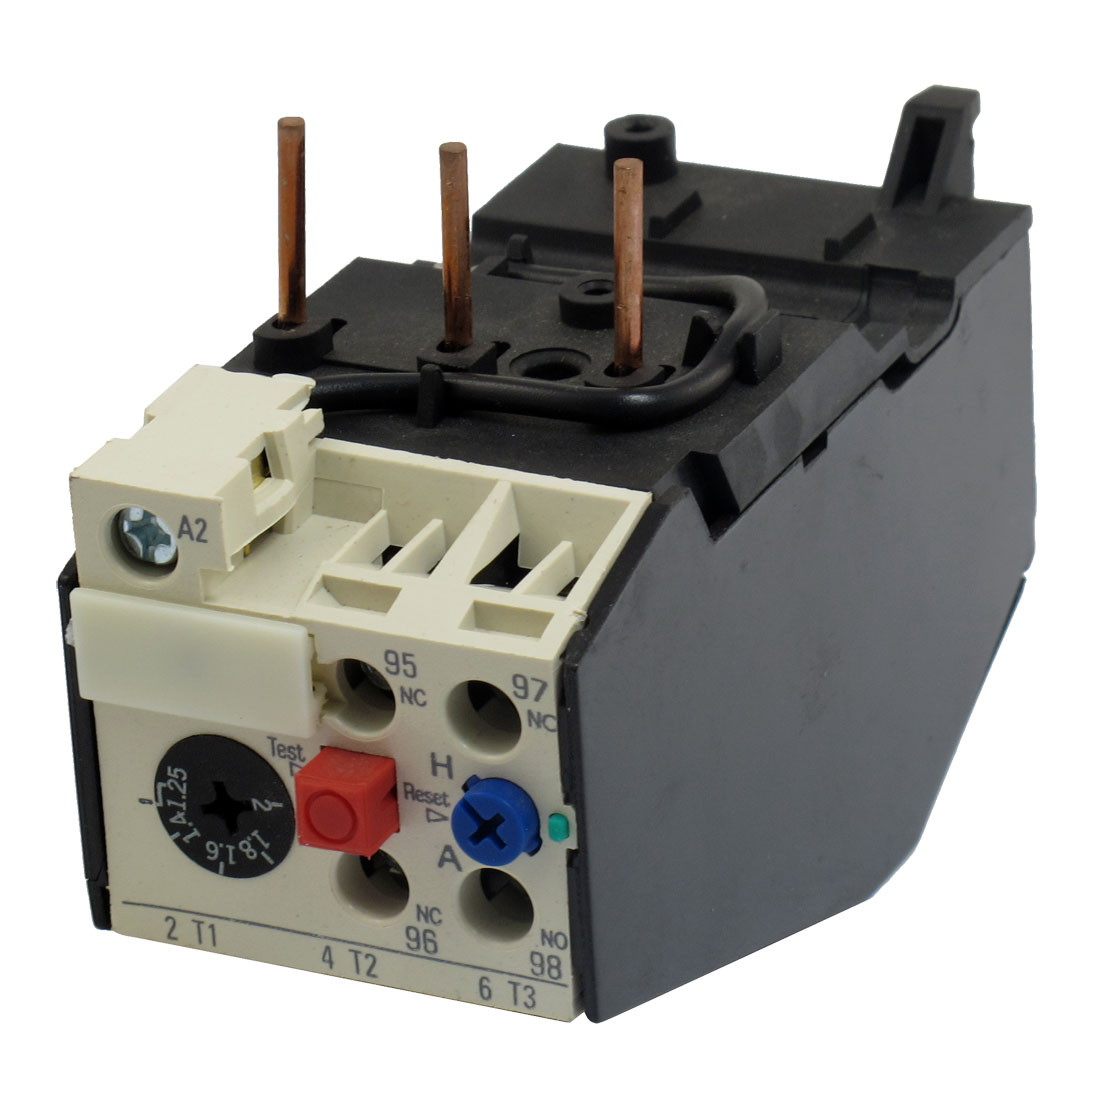 JRS2-25 2A 3 Pole 1.25-2A Current Range Motor Thermal Overload Relays